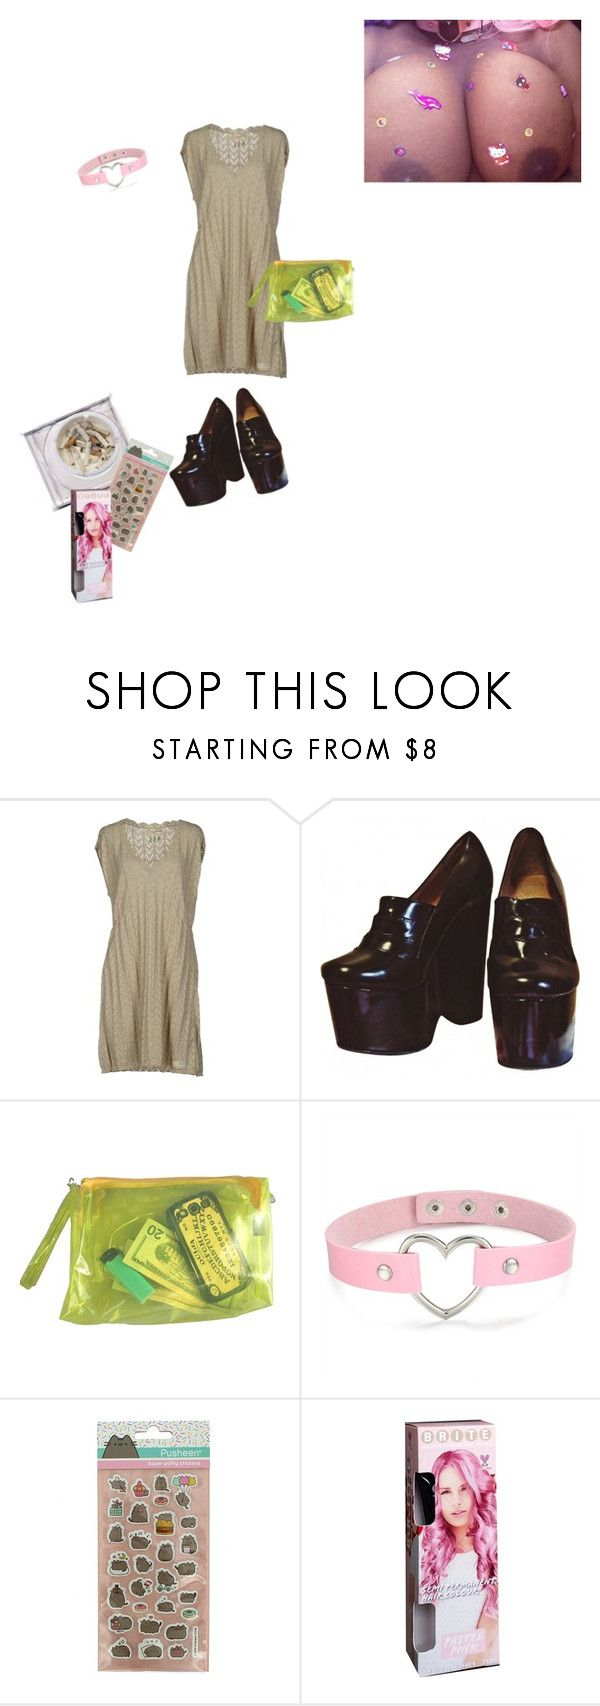 """""""Untitled #8"""" by asterplaster ❤ liked on Polyvore featuring Ash, Odd Molly, Jeffrey Campbell, Pusheen and Forever 21"""